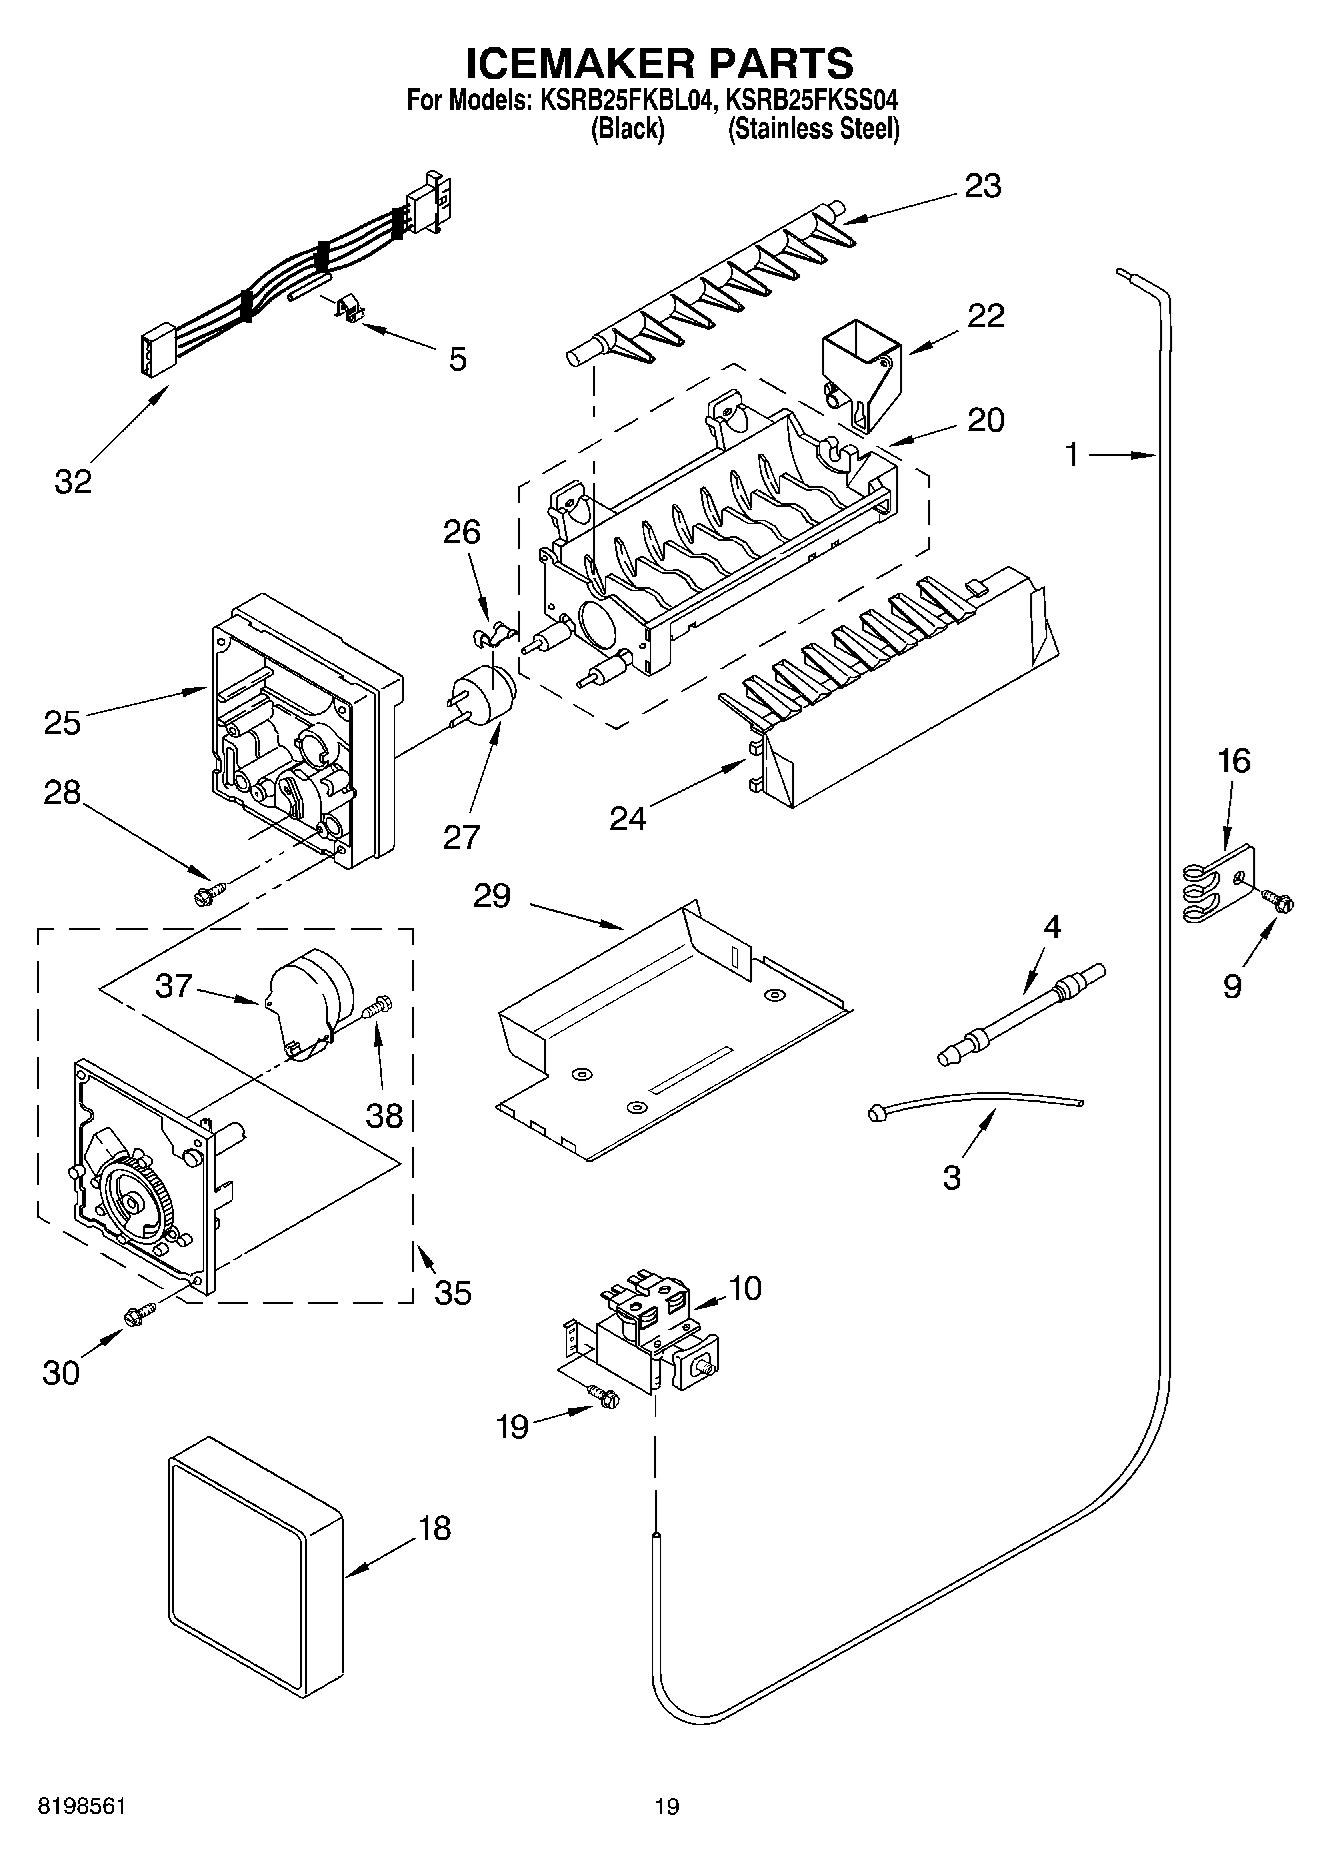 Ksrb25fkss04 Icemaker Parts Parts Not Illustrated